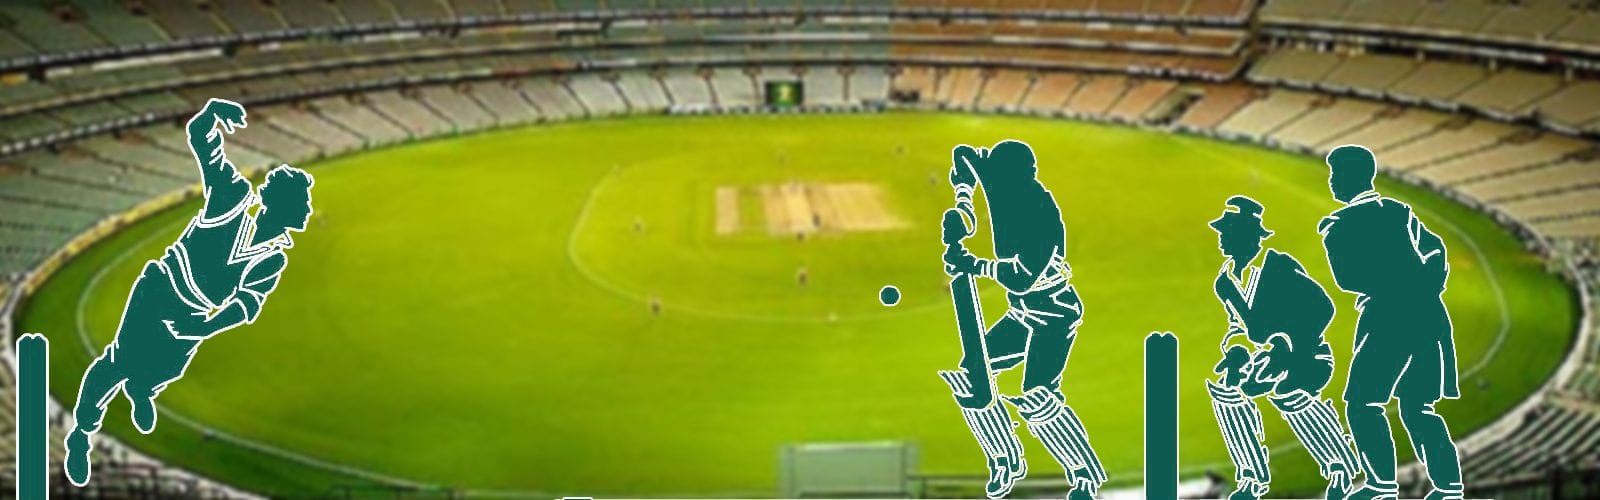 Online cricket Betting tips